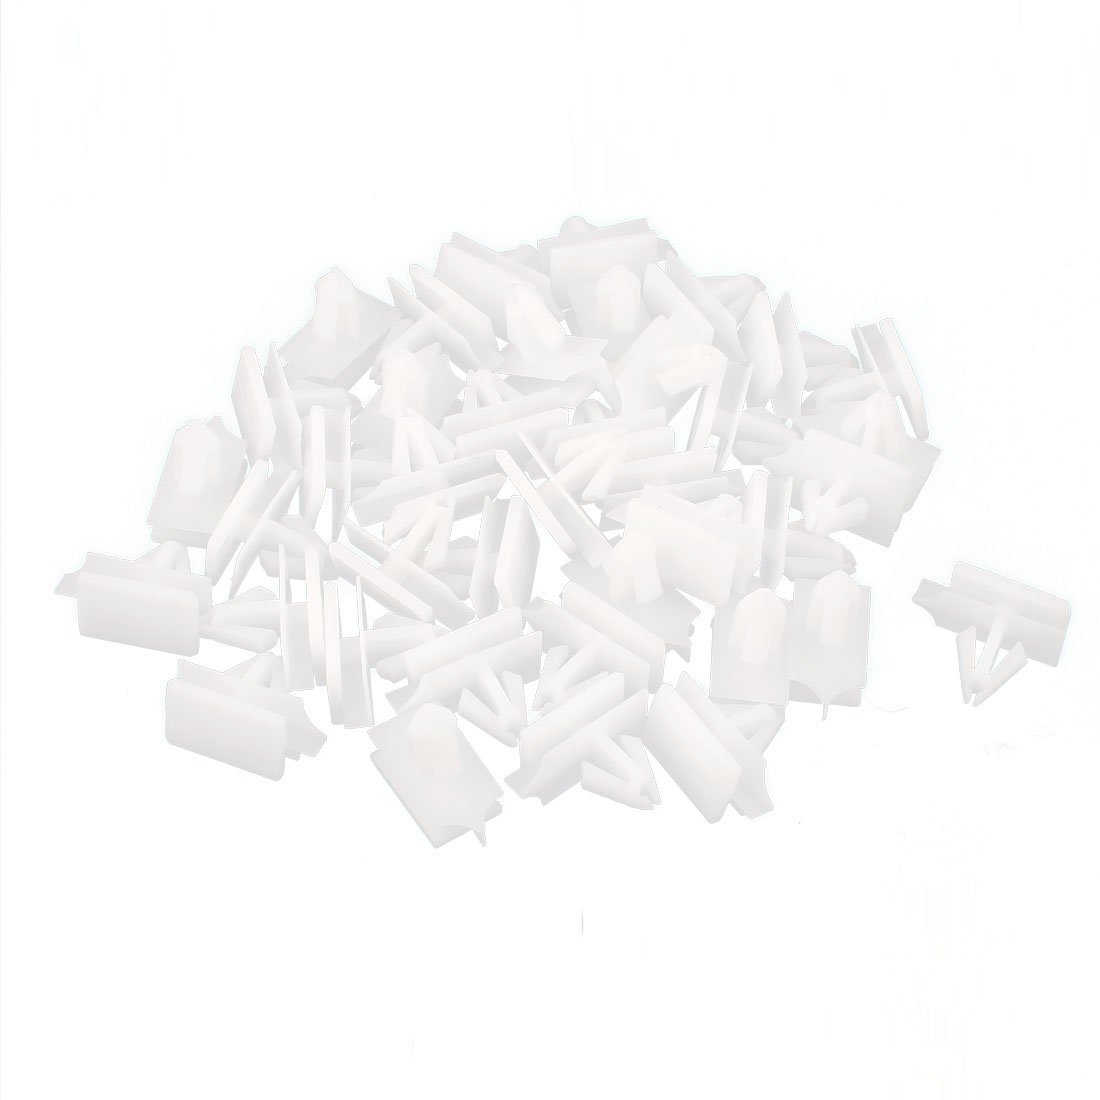 40 Pcs 11mm Hole White Nylon Rivets Fastener Fender Bumper Clips for A9 Car